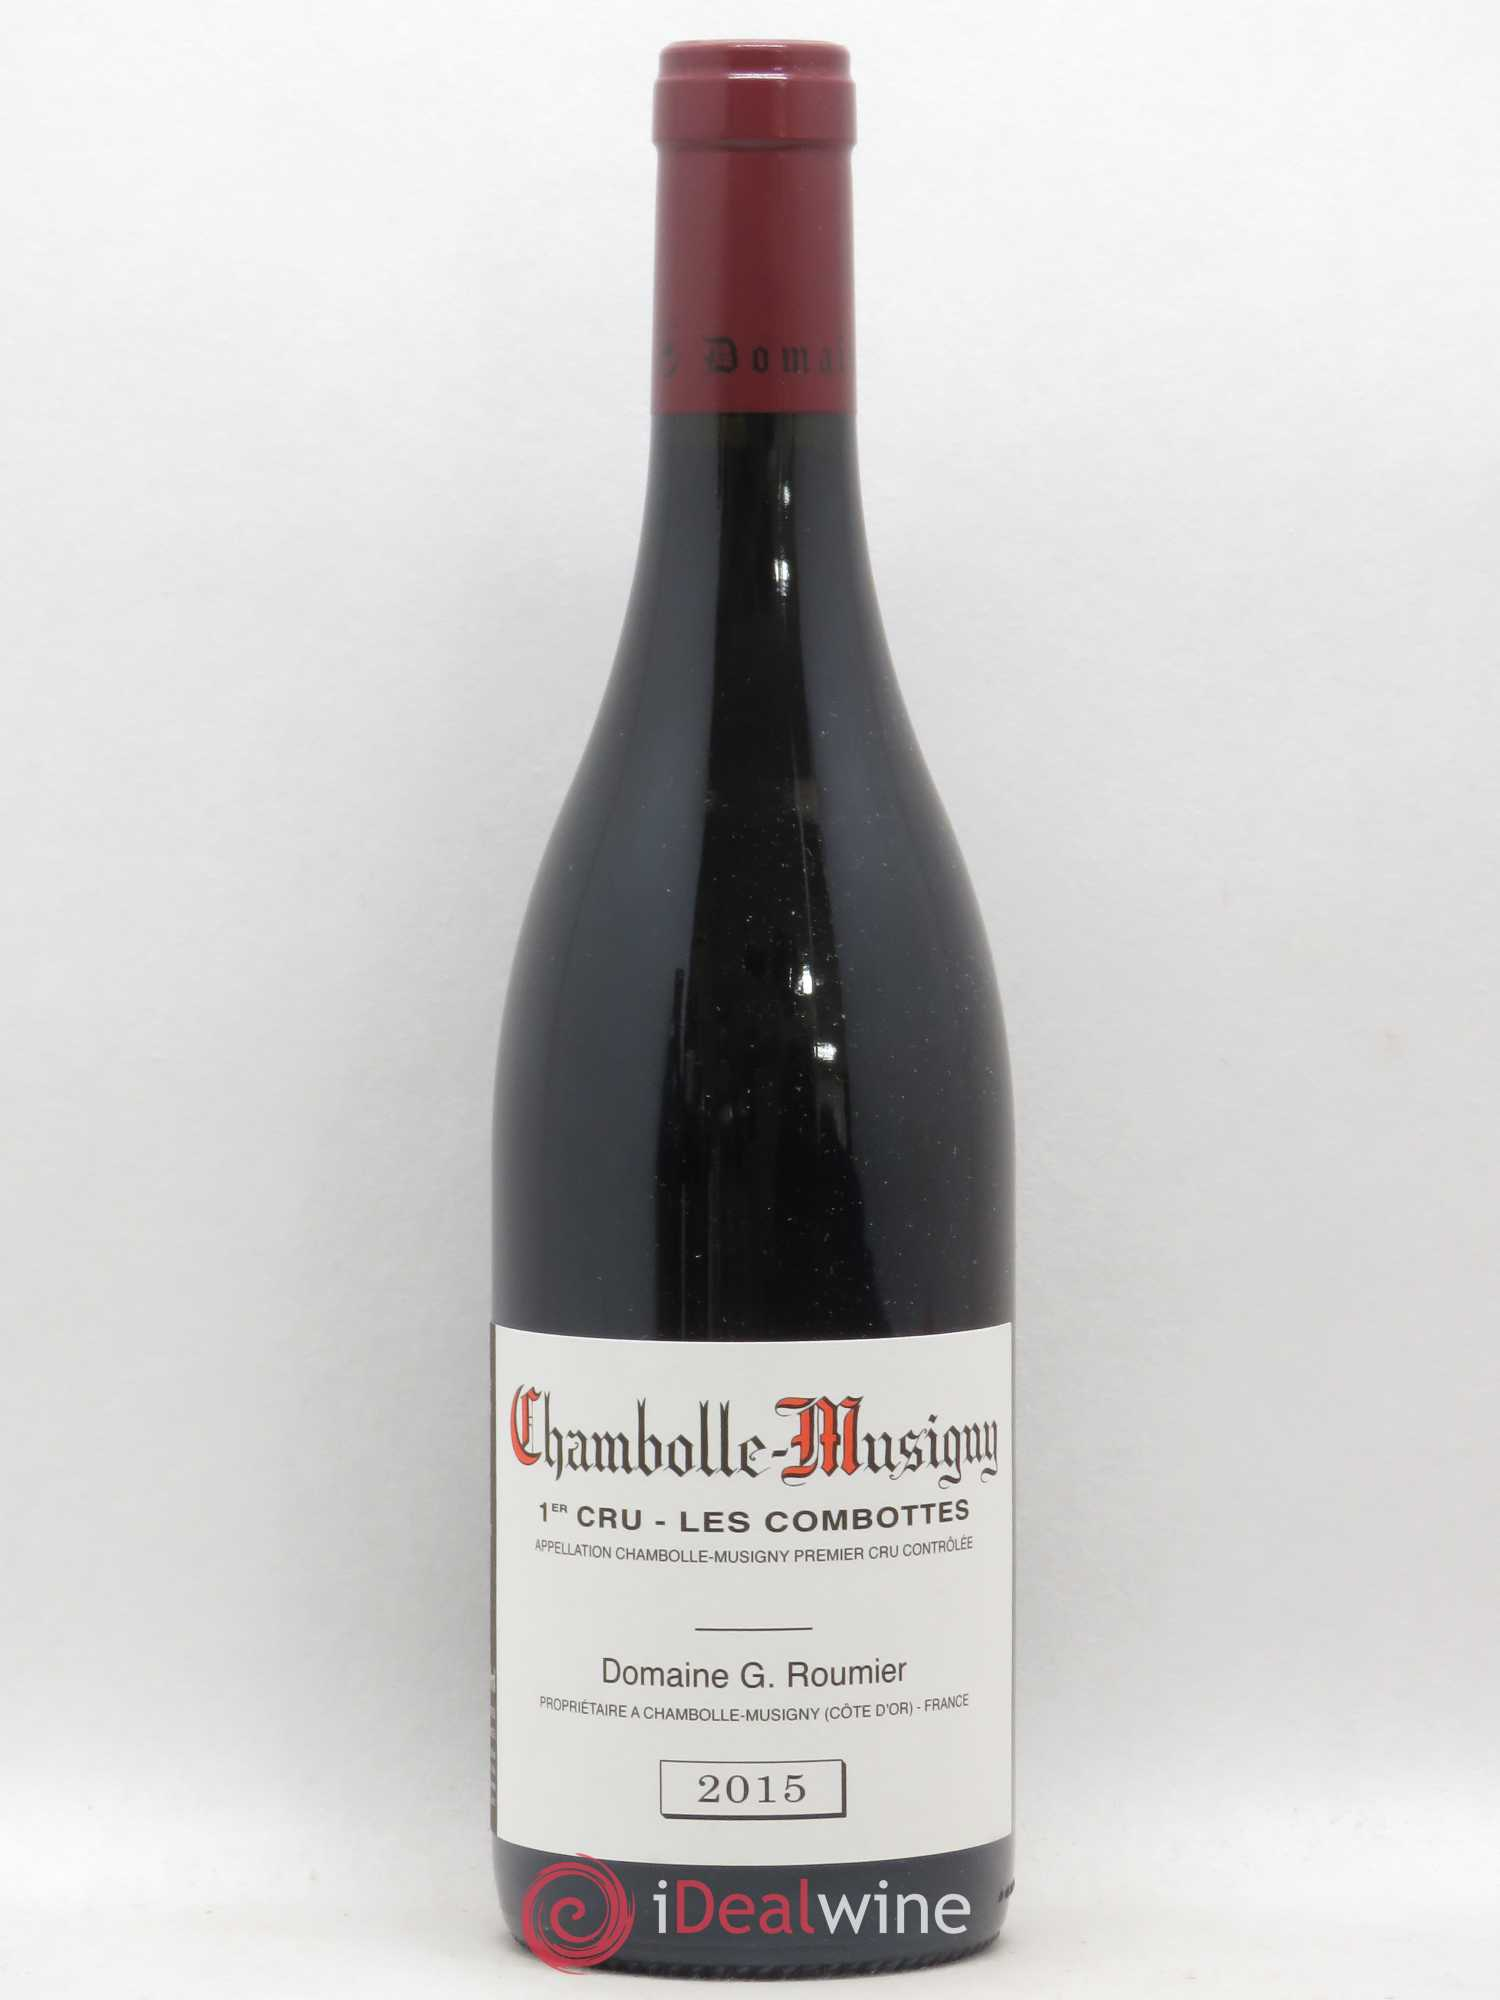 Chambolle-Musigny 1er Cru Les Combottes Georges Roumier (Domaine)